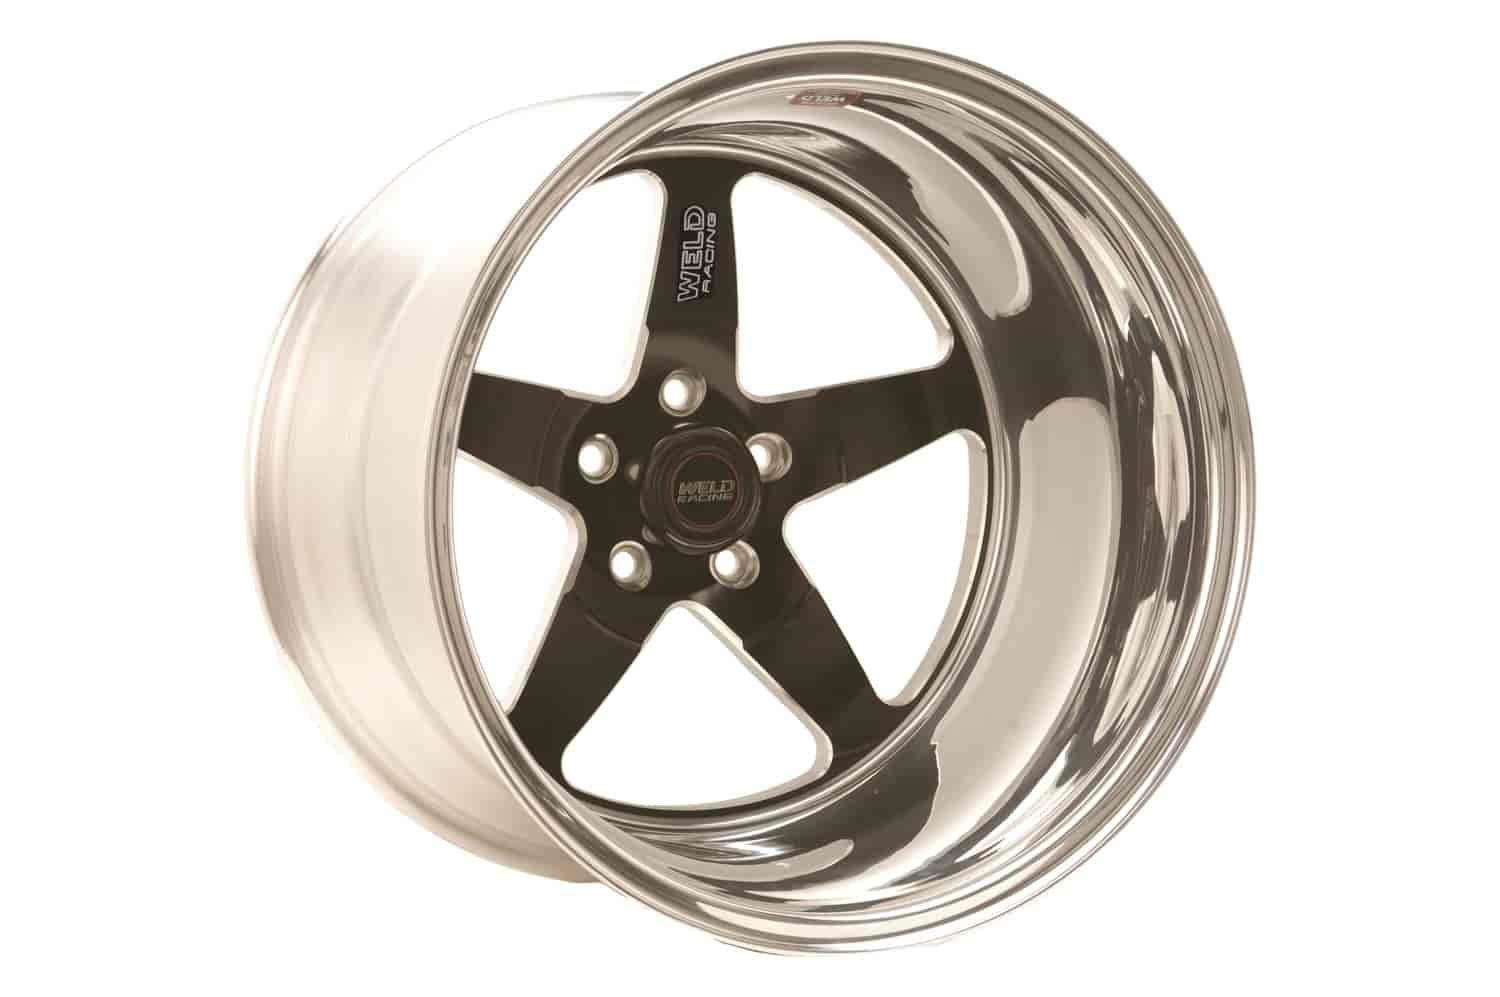 15 x 3 Race Star Wheels 92-537240B 92 Series Drag Star Bracket Racer Wheel Size